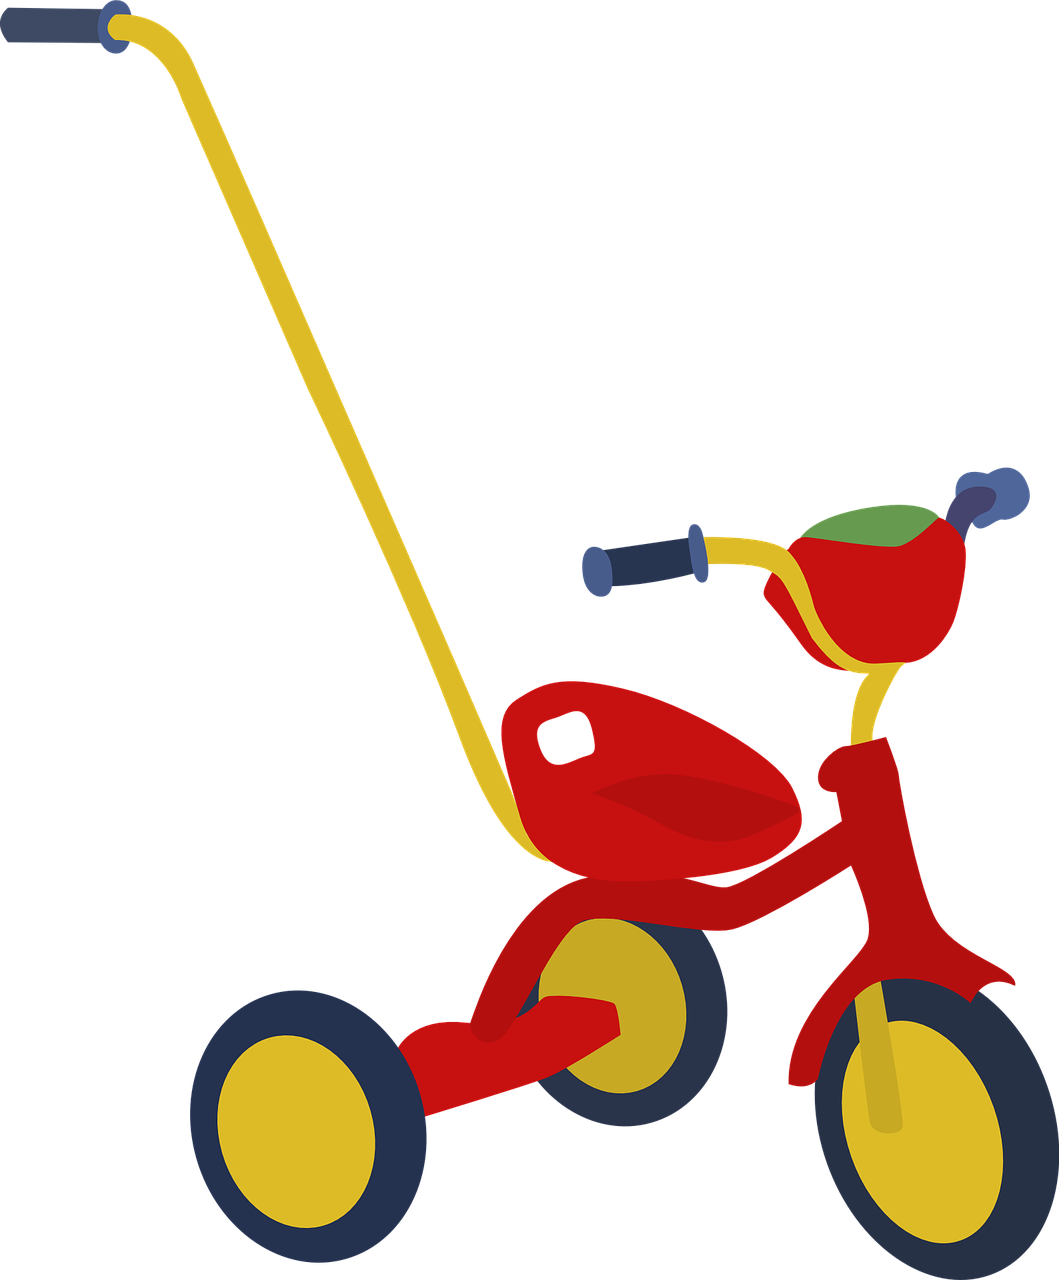 Tricycle clipart little red. To bicycle supporting your